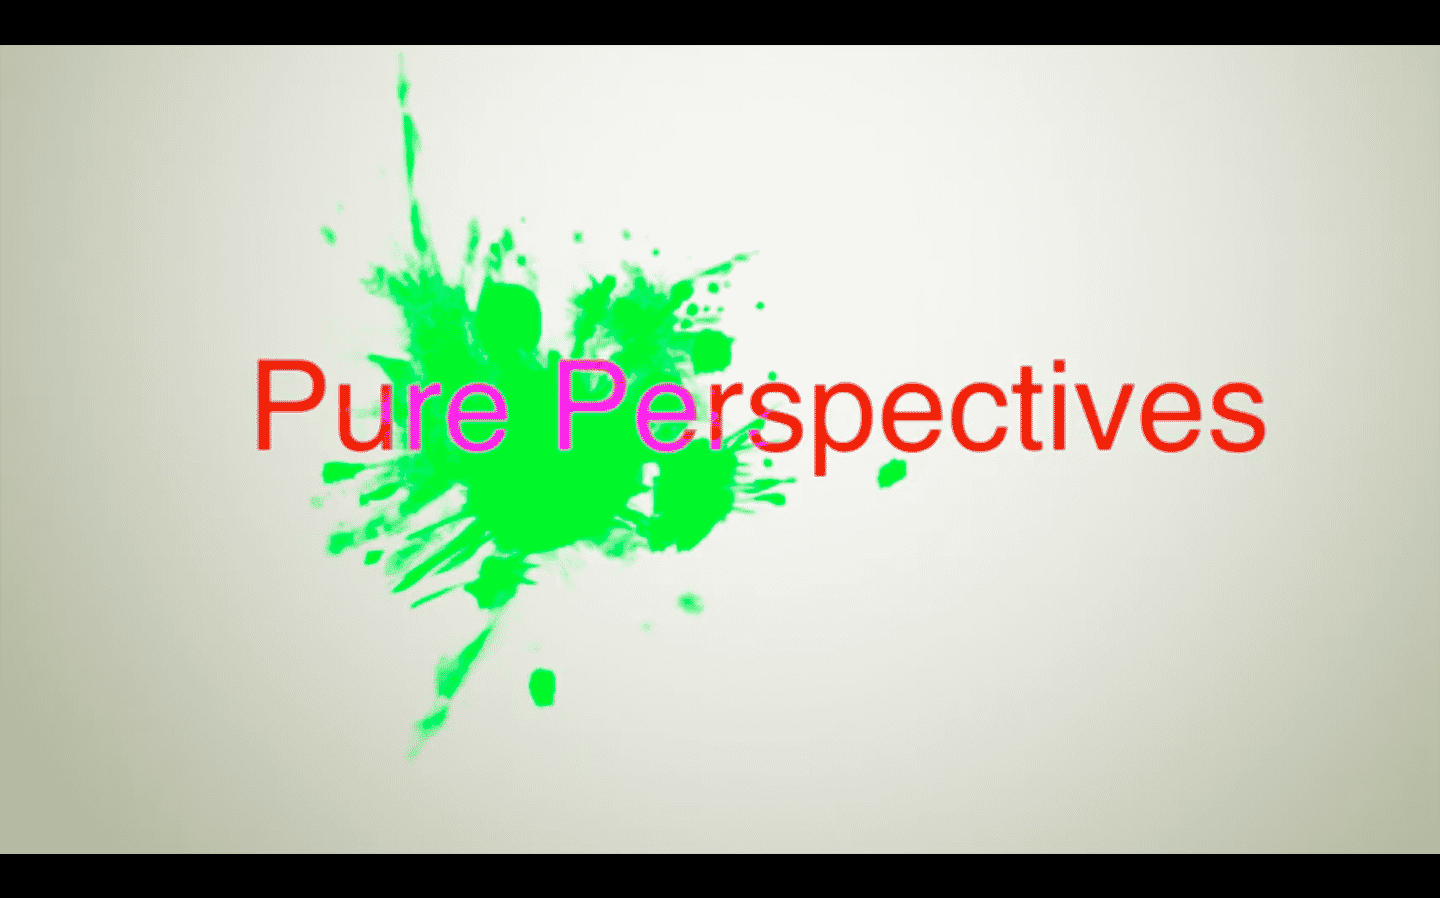 Pure Perspectives: Challenges of Complexity